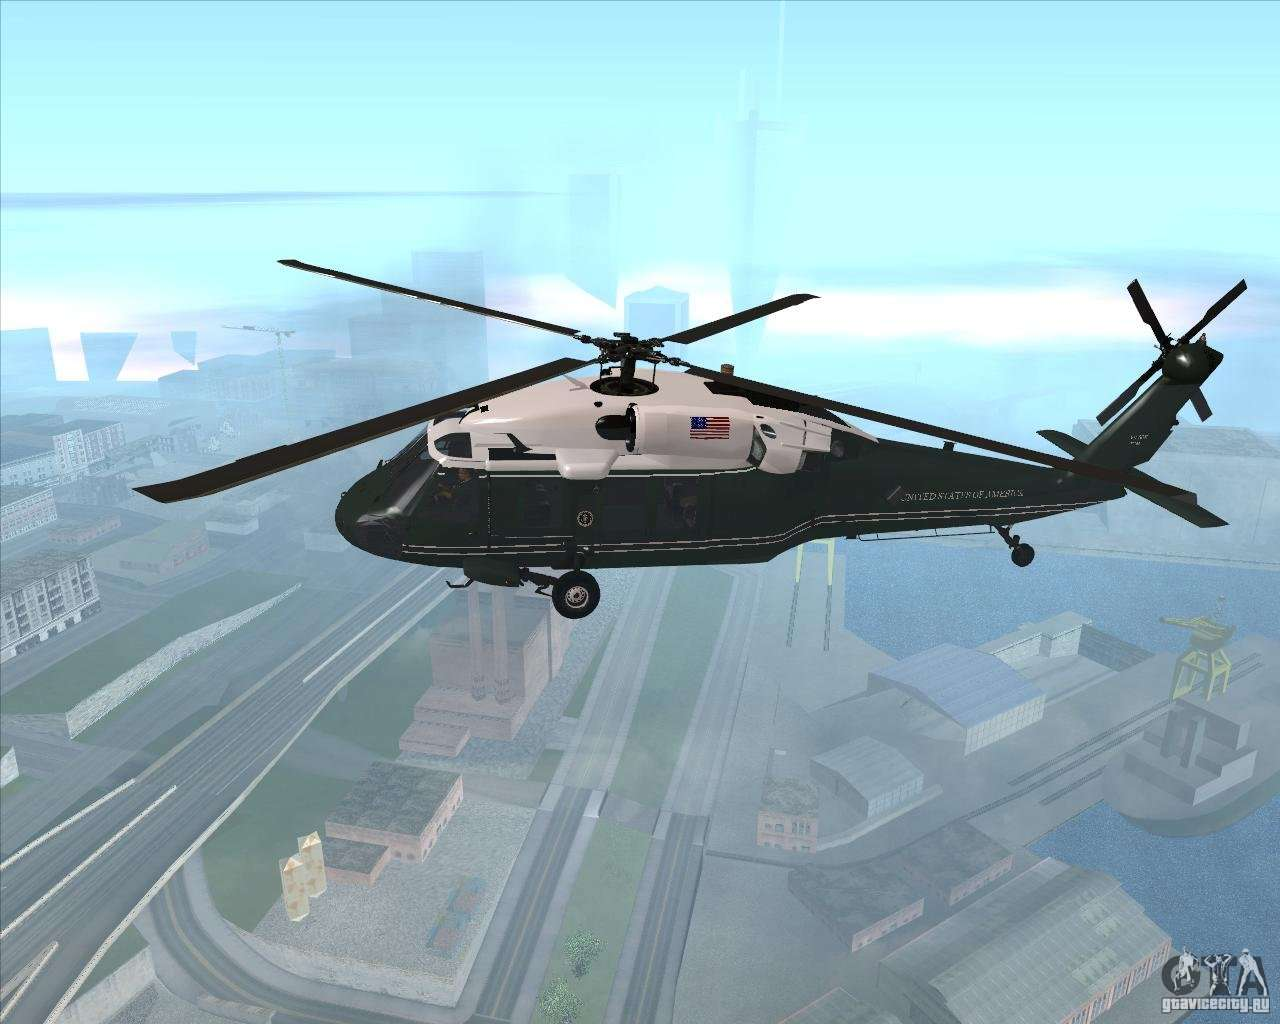 helicopter gta 5 with 12659 Sikorsky Vh 60n Whitehawk on 27041 Vertolet Bell Uh 1y Venom likewise 832864 Yacht Appreciation Thread furthermore 12659 Sikorsky Vh 60n Whitehawk as well 48789 The Md500e Helicopter V1 besides Dictatorships Seduced Promise 24 Carat Glamour Young Britons Signing Superyacht Crew Stranded Aboard Floating Tyrannies Forced Indulge Bizarre Whims Monstrously Spoilt Owners.